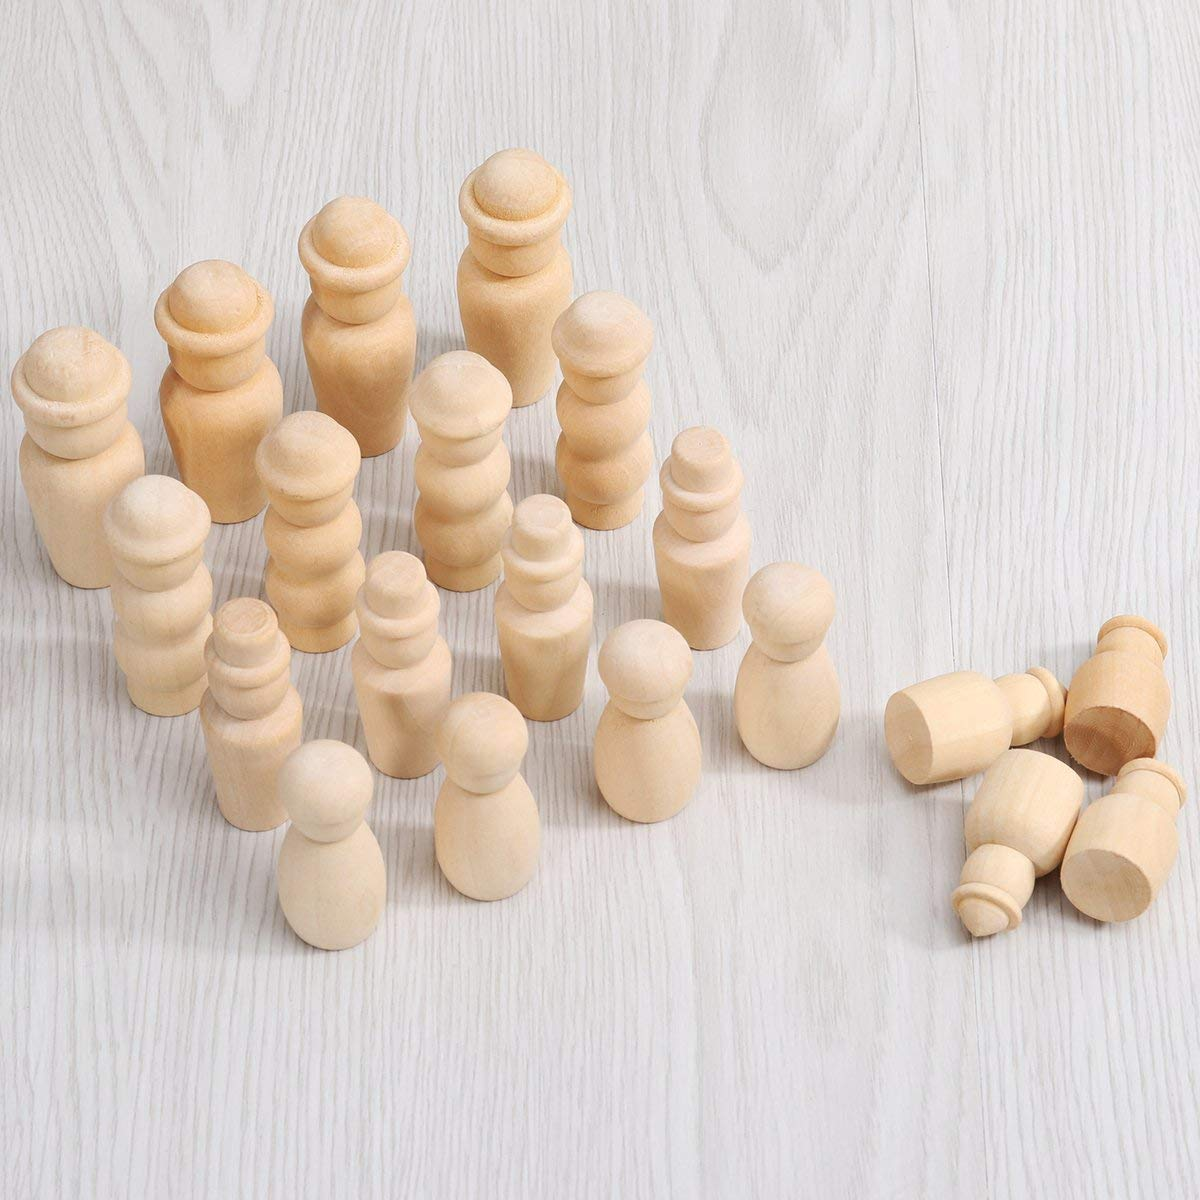 Peg Game Craft Art Projects WOWOSS 50 Pack Unfinished Wooden Peg Dolls 5 Assorted Shapes Family Peg People Doll Bodies Natural Decorative Wood Shapes Figures for Painting